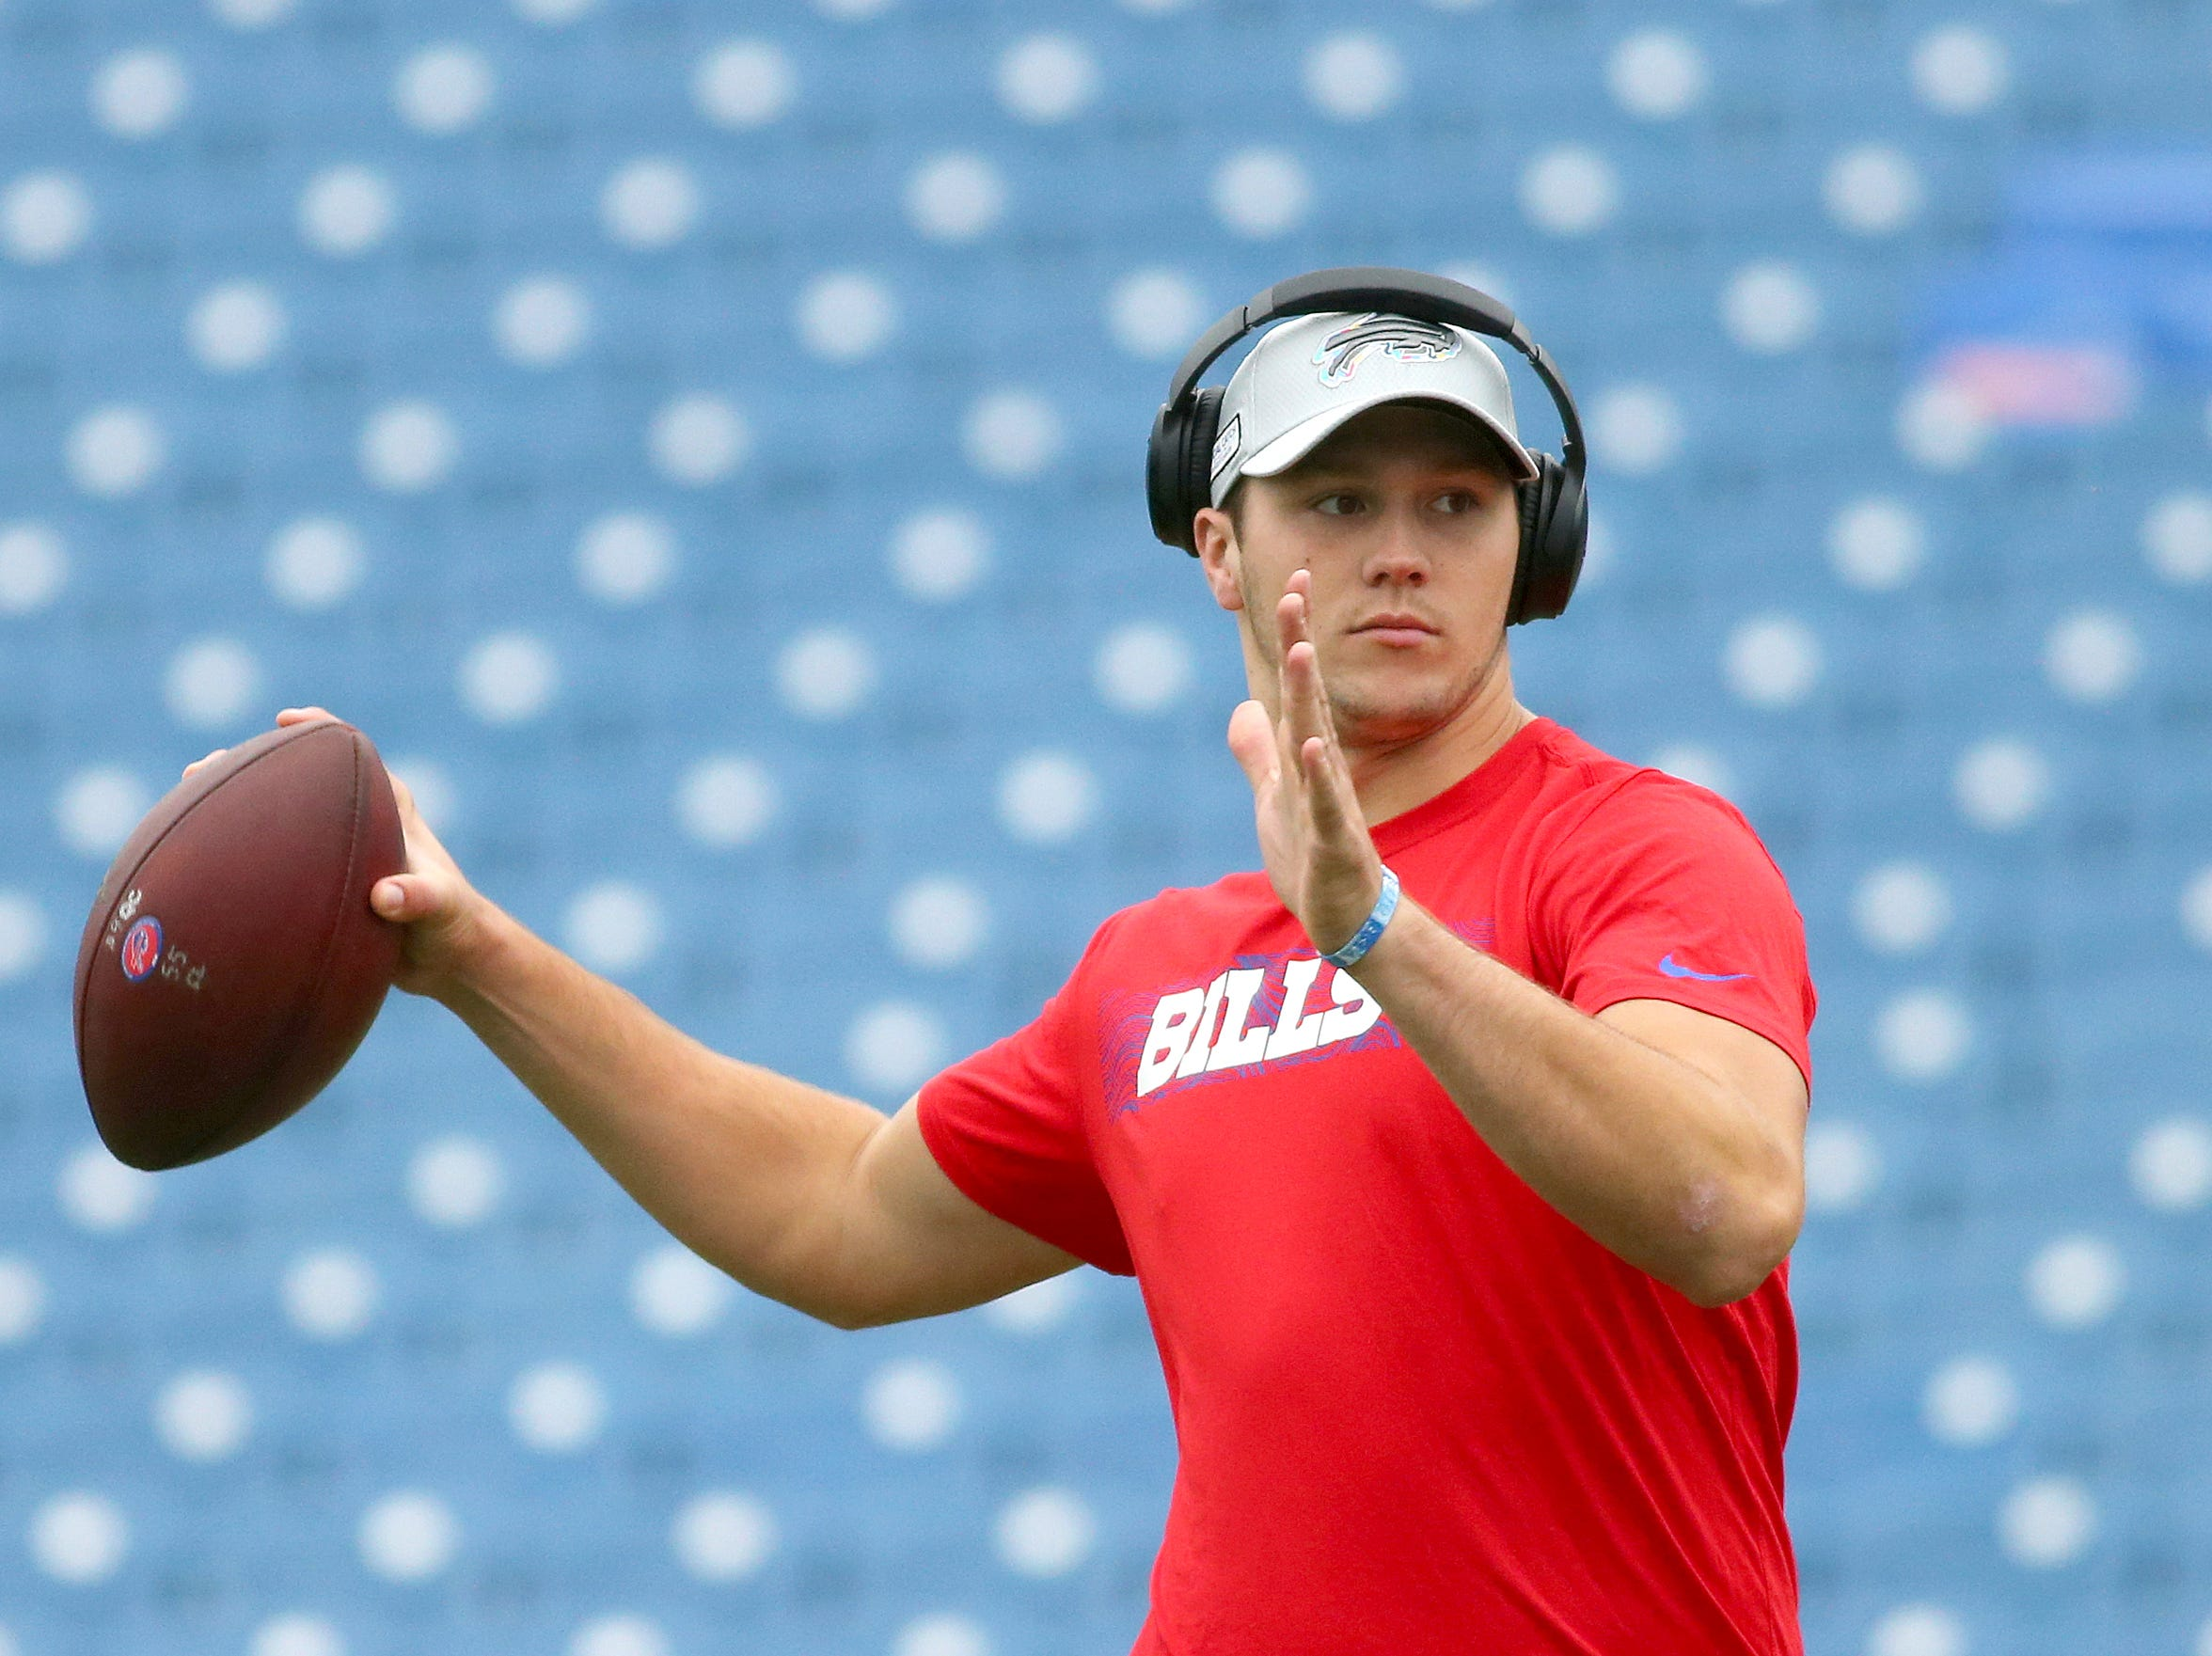 Buffalo Bills quarterback Josh Allen works out prior to an NFL football game against the Tennessee Titans, Sunday, Oct. 7, 2018, in Orchard Park, N.Y. (AP Photo/Jeffrey T. Barnes)